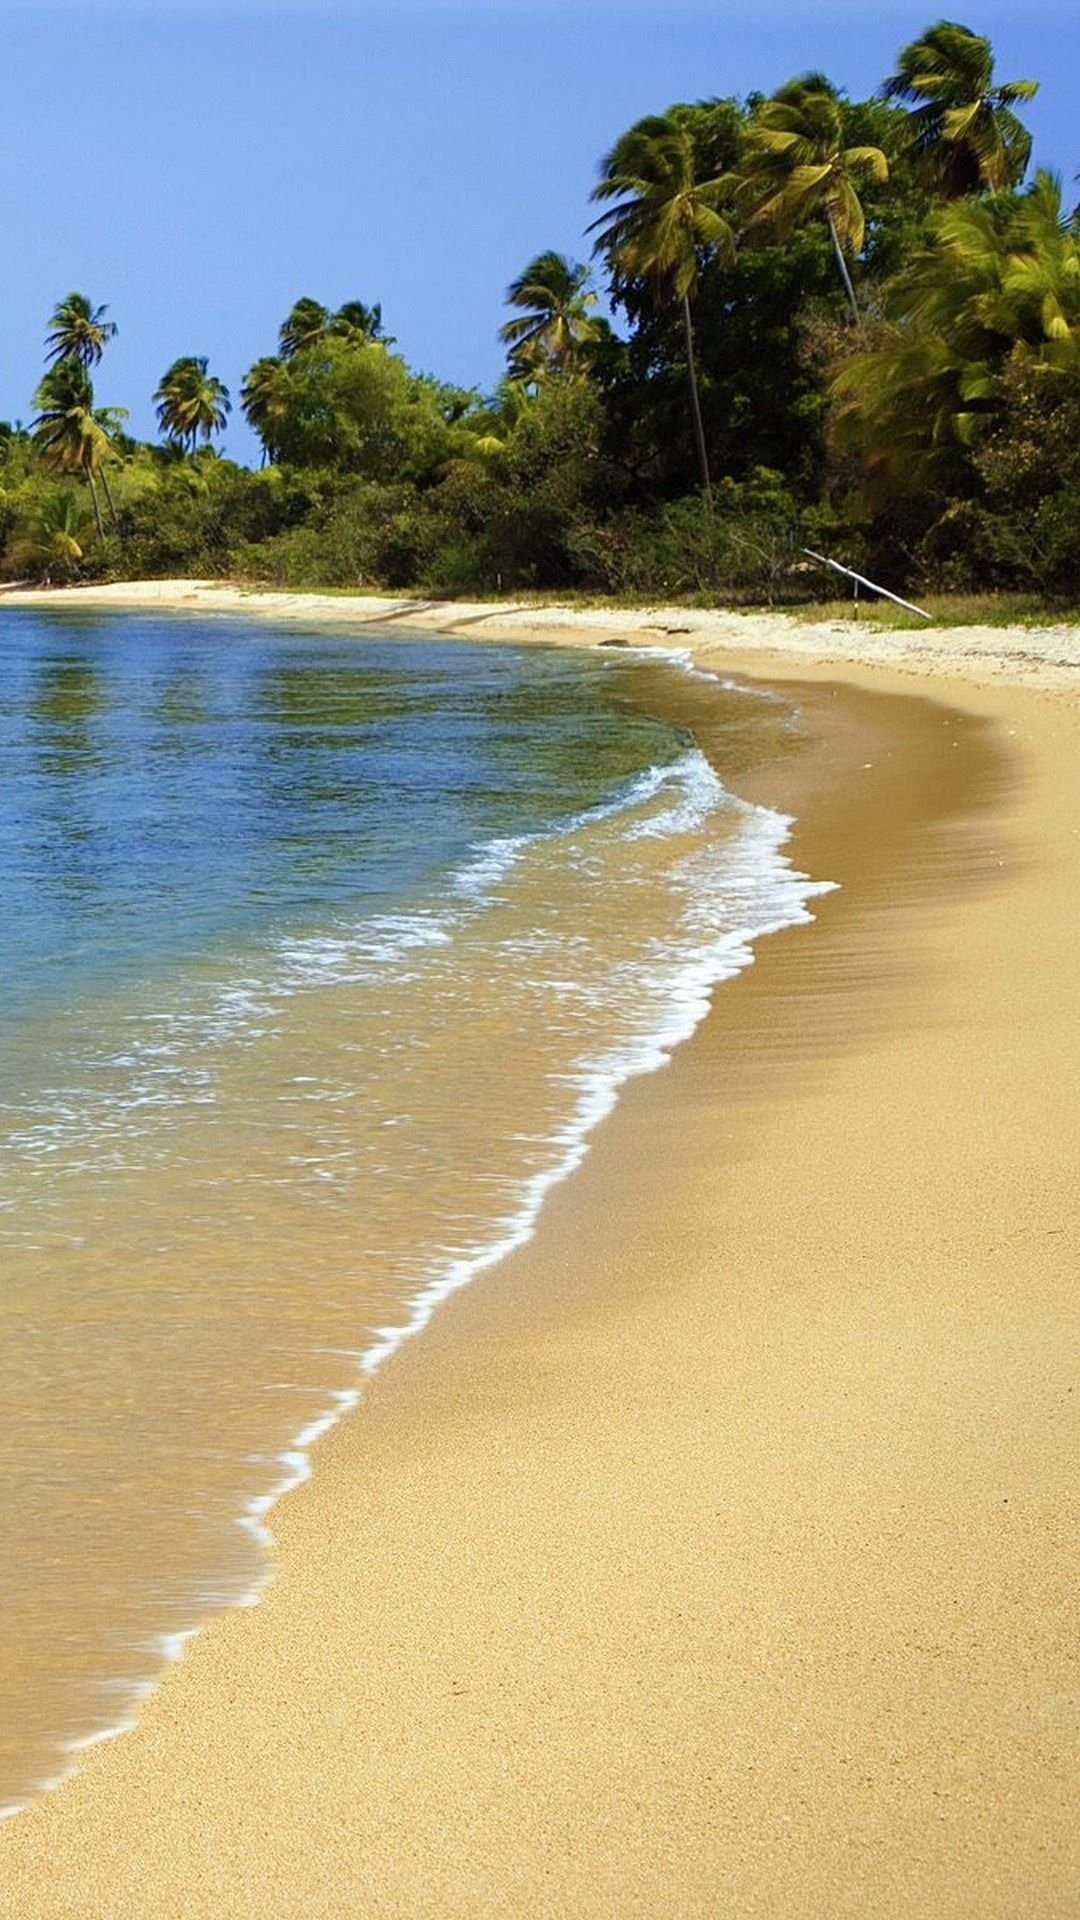 Puerto rico beach sand palm trees iphone 6 wallpaper - Puerto rico beach background ...